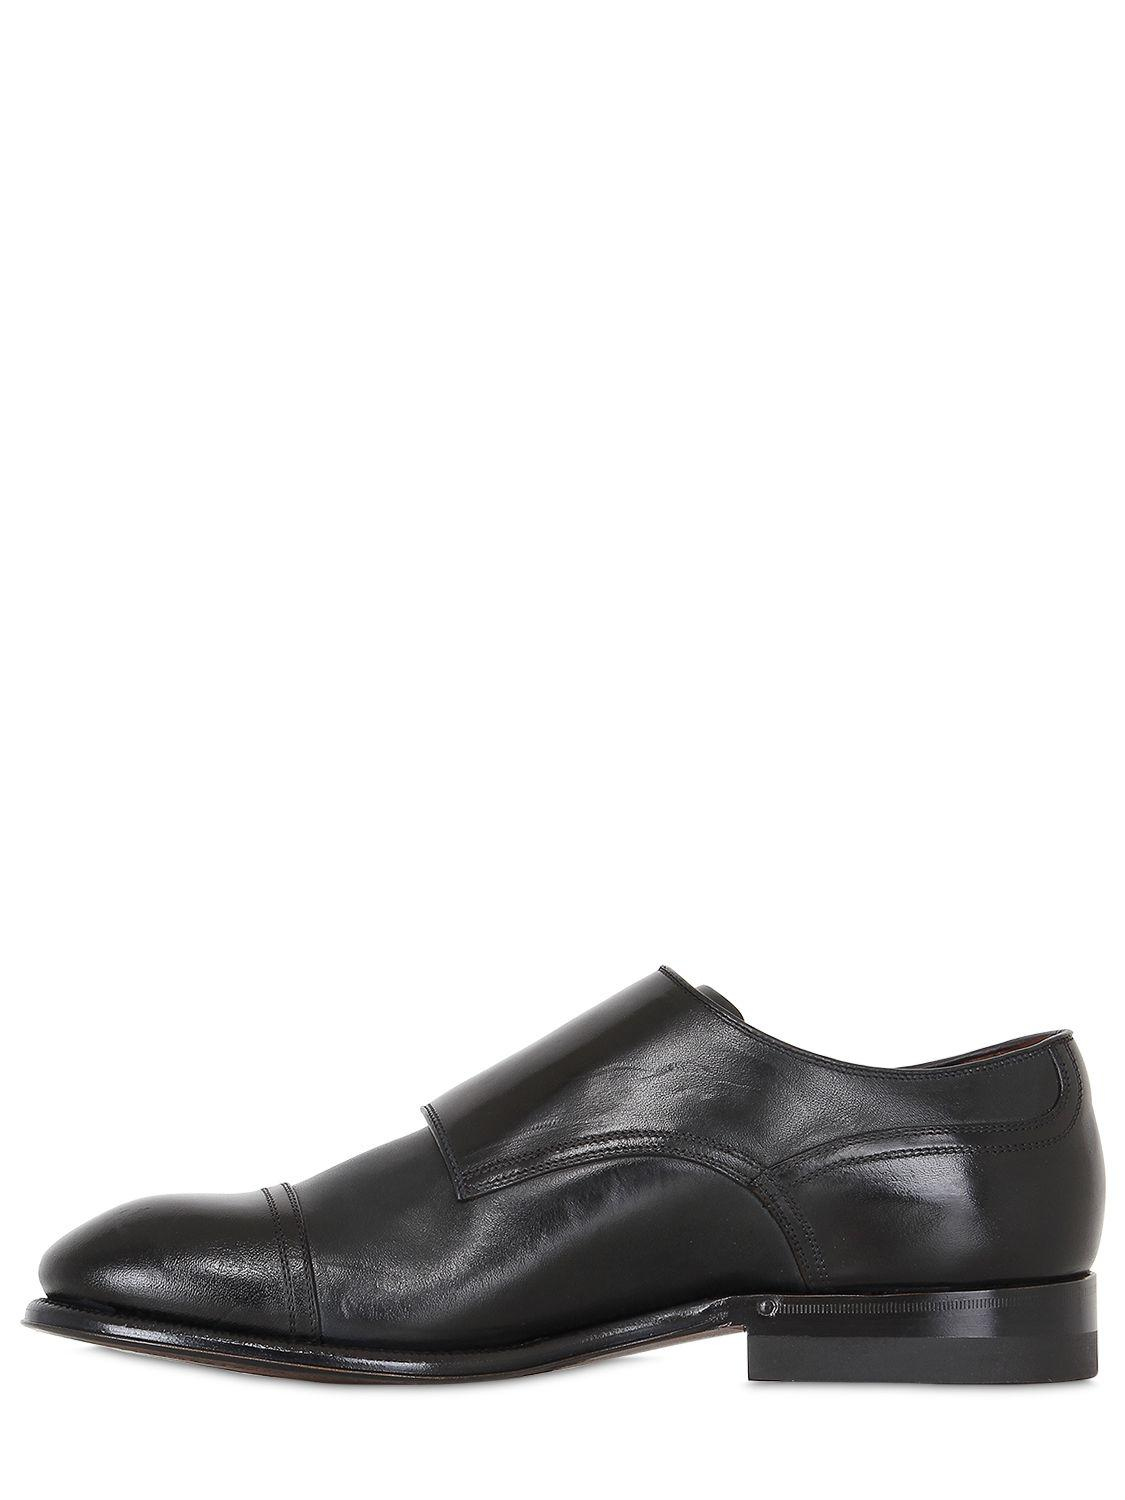 Silvano Sassetti Brushed Leather Monk Strap Shoes in Midnight/Black (Blue) for Men